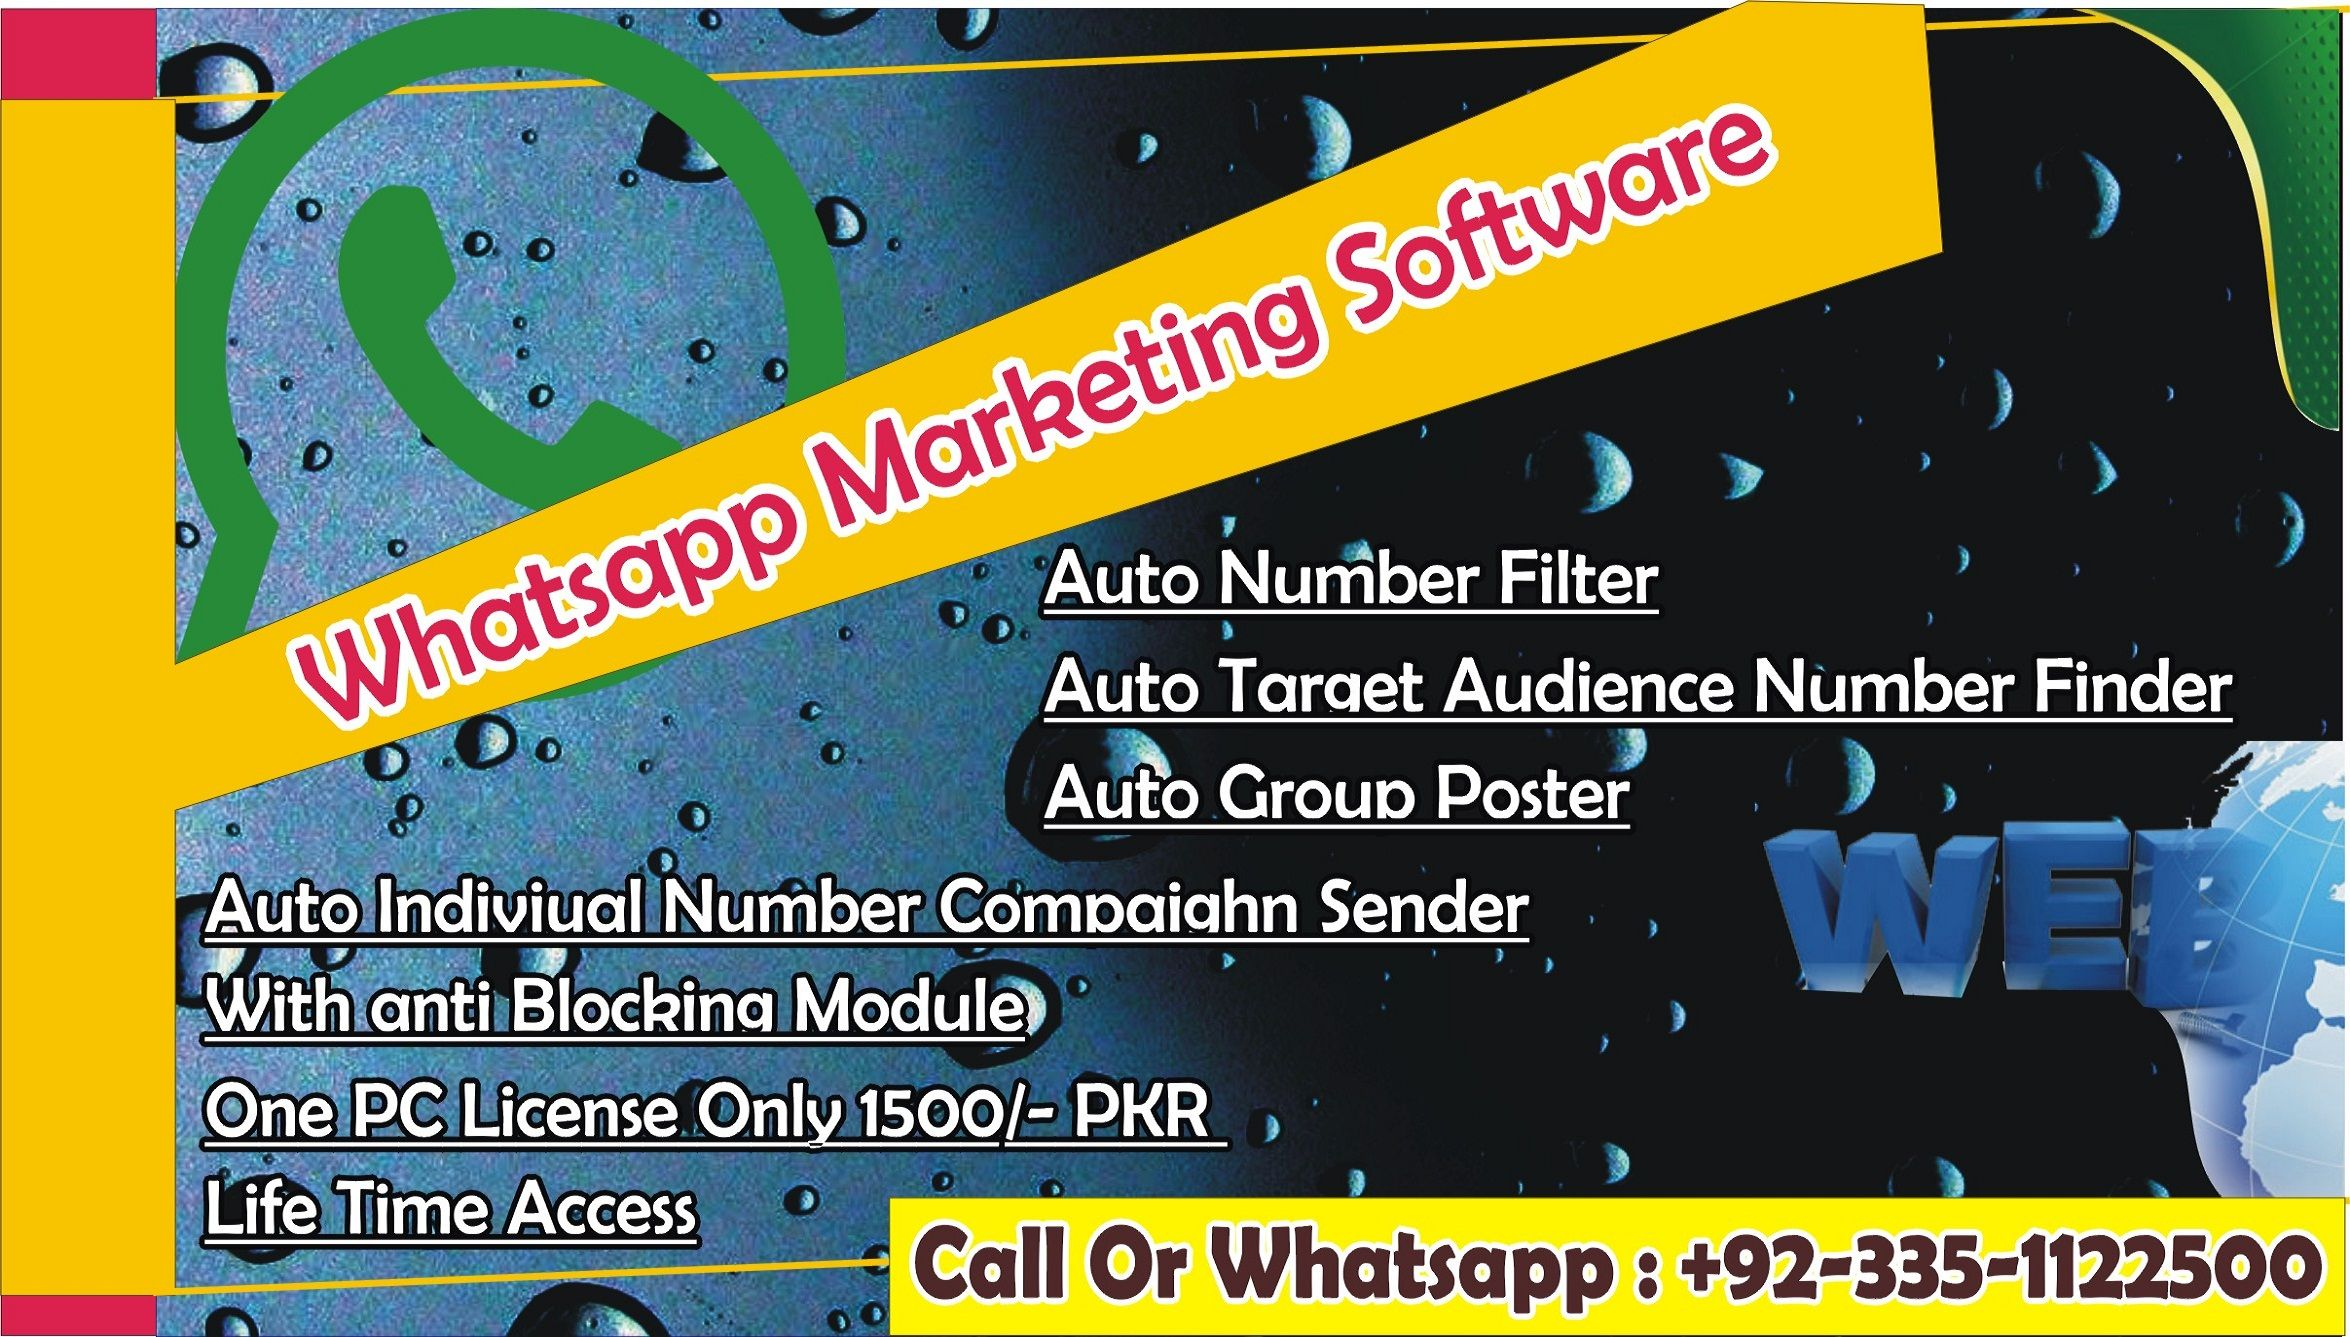 Pin by Ghulam Ch on Whatsapp Marketing Software | Marketing software